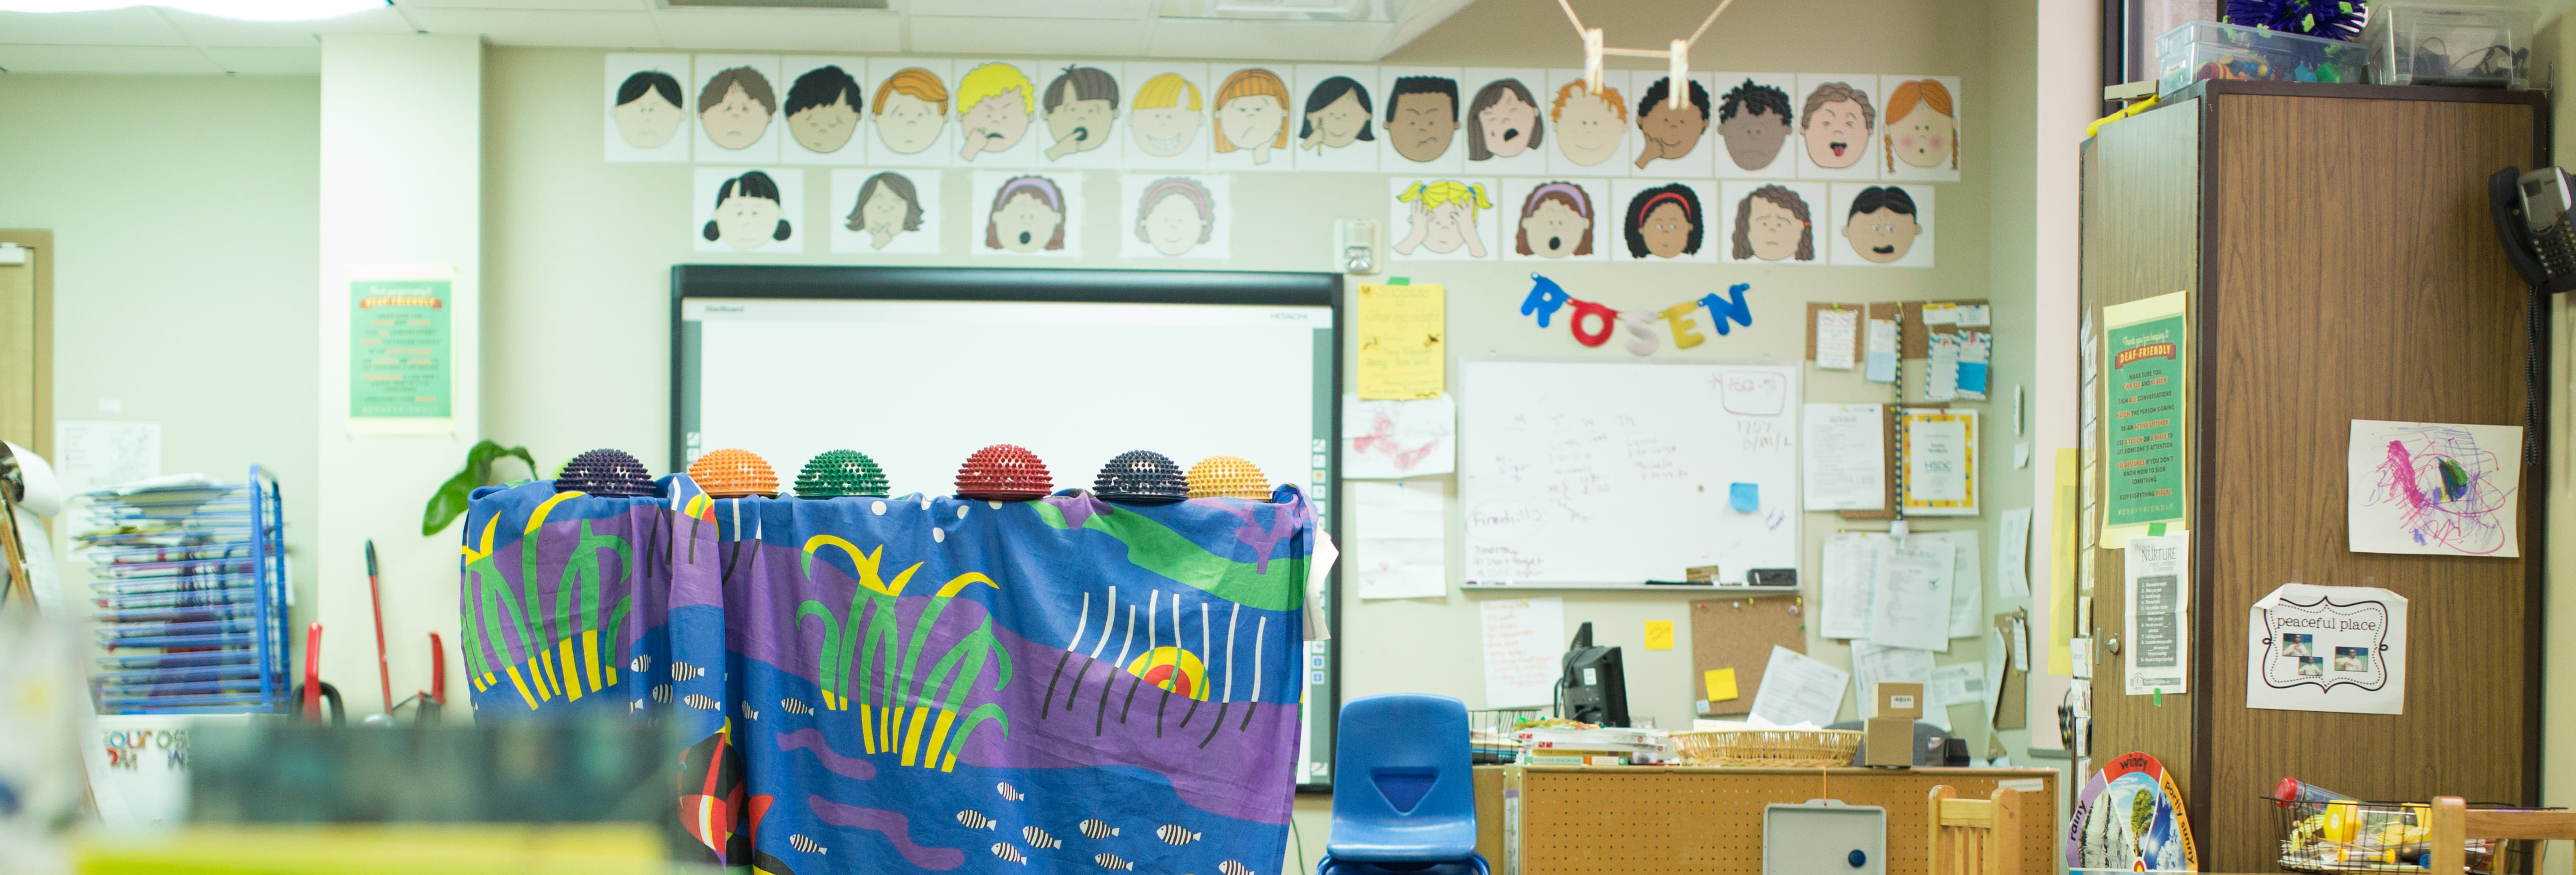 Picture of Rosen Family Preschool classroom.